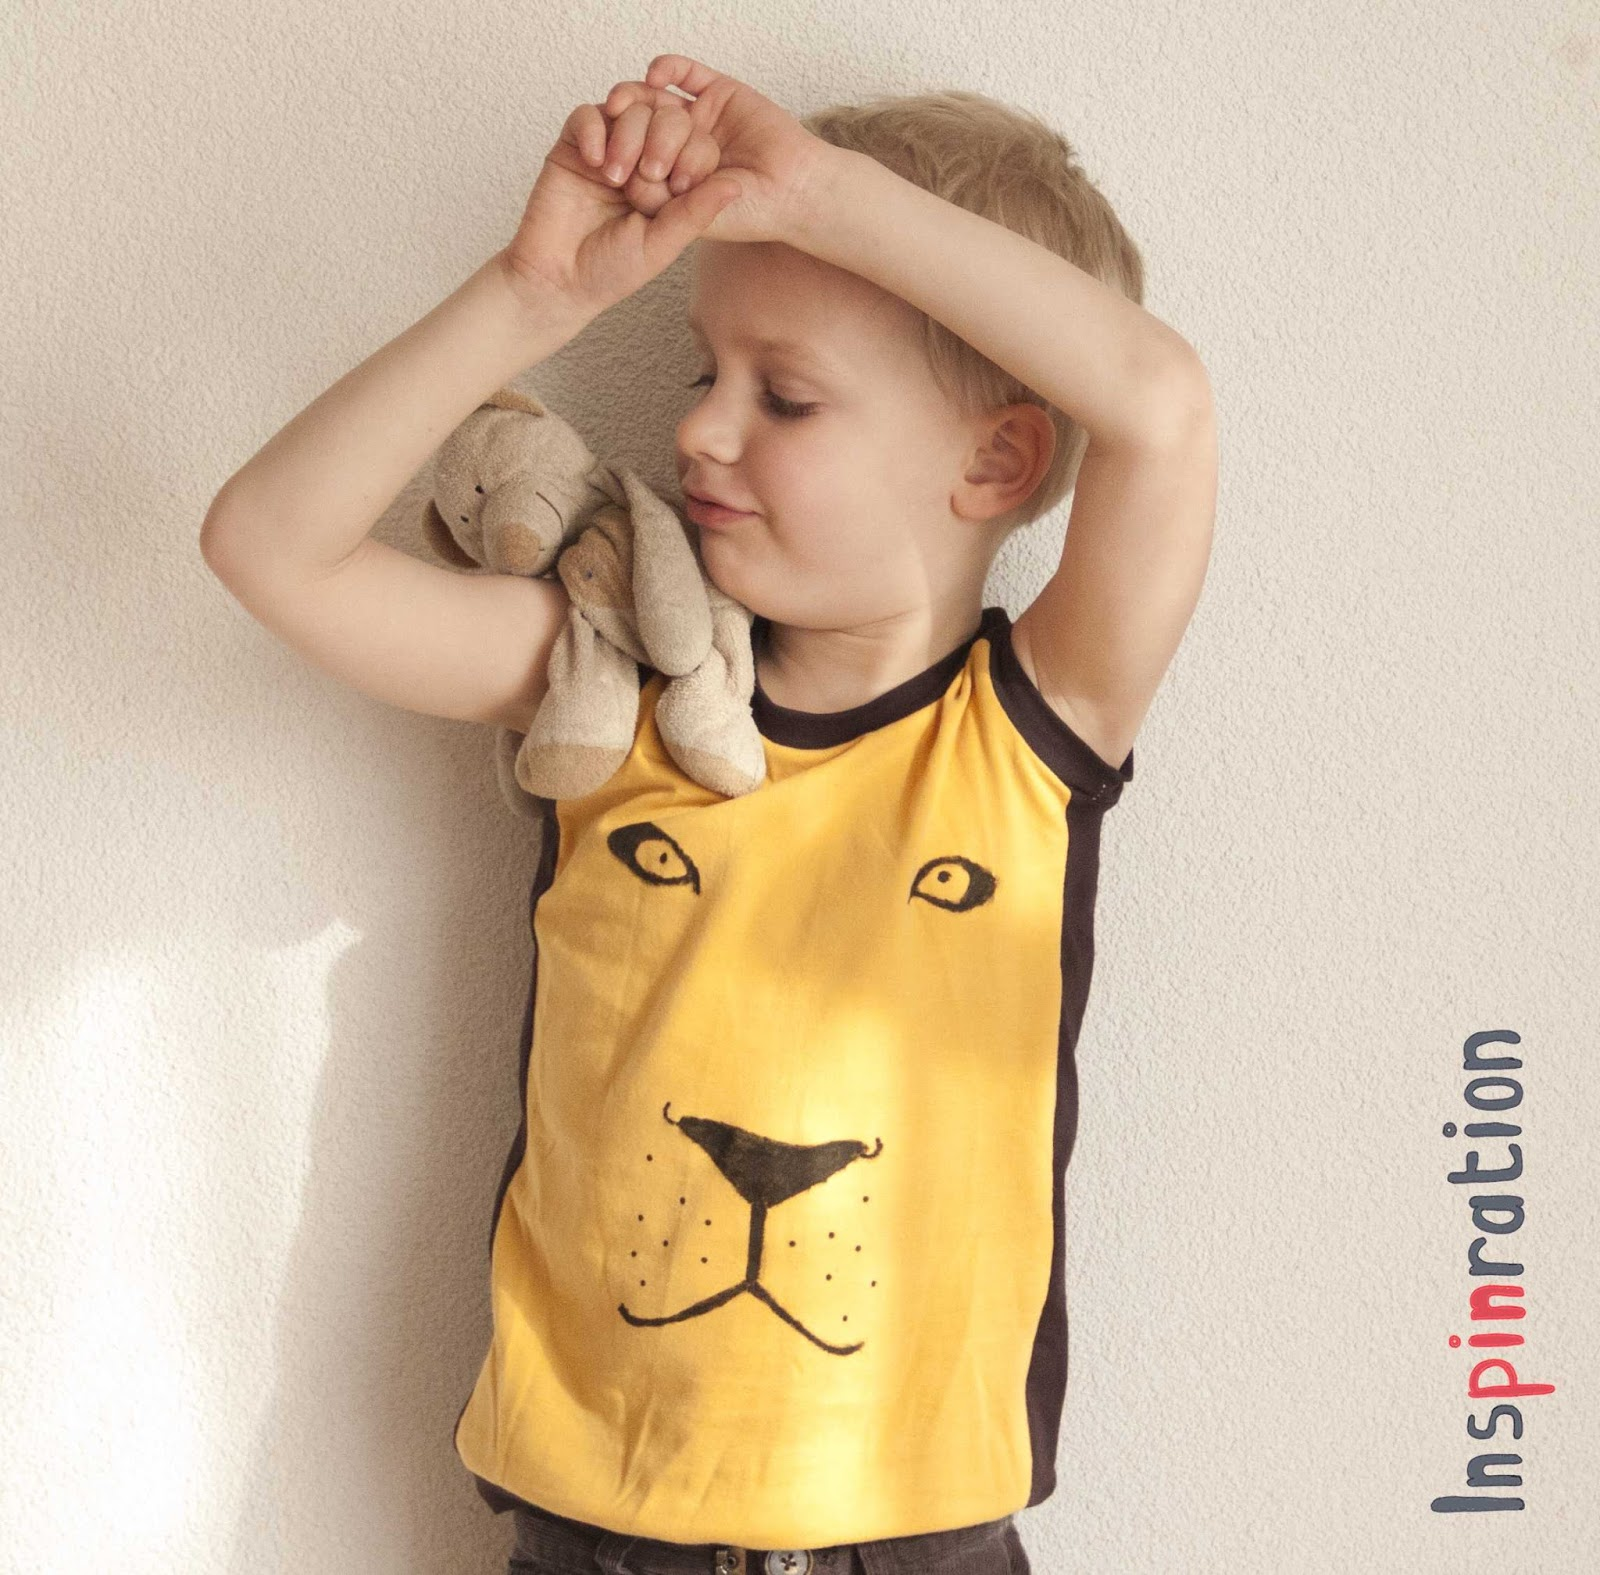 http://www.inspinration.blogspot.nl/2015/02/the-garcon-muscle-tee.html